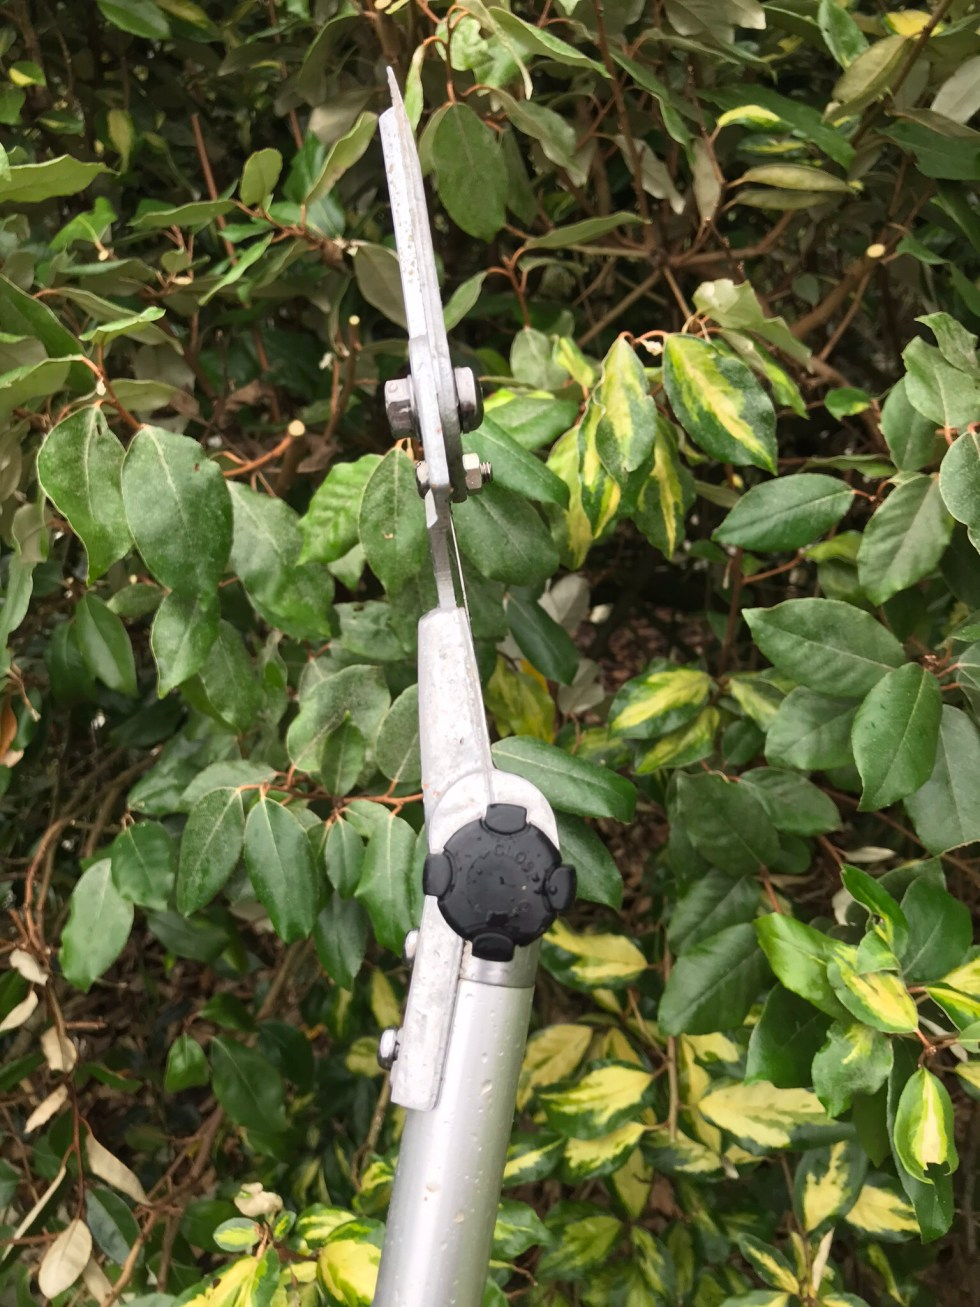 img 1185 Tool review ARS telescopic long reach pruner 180ZR 3.0 5